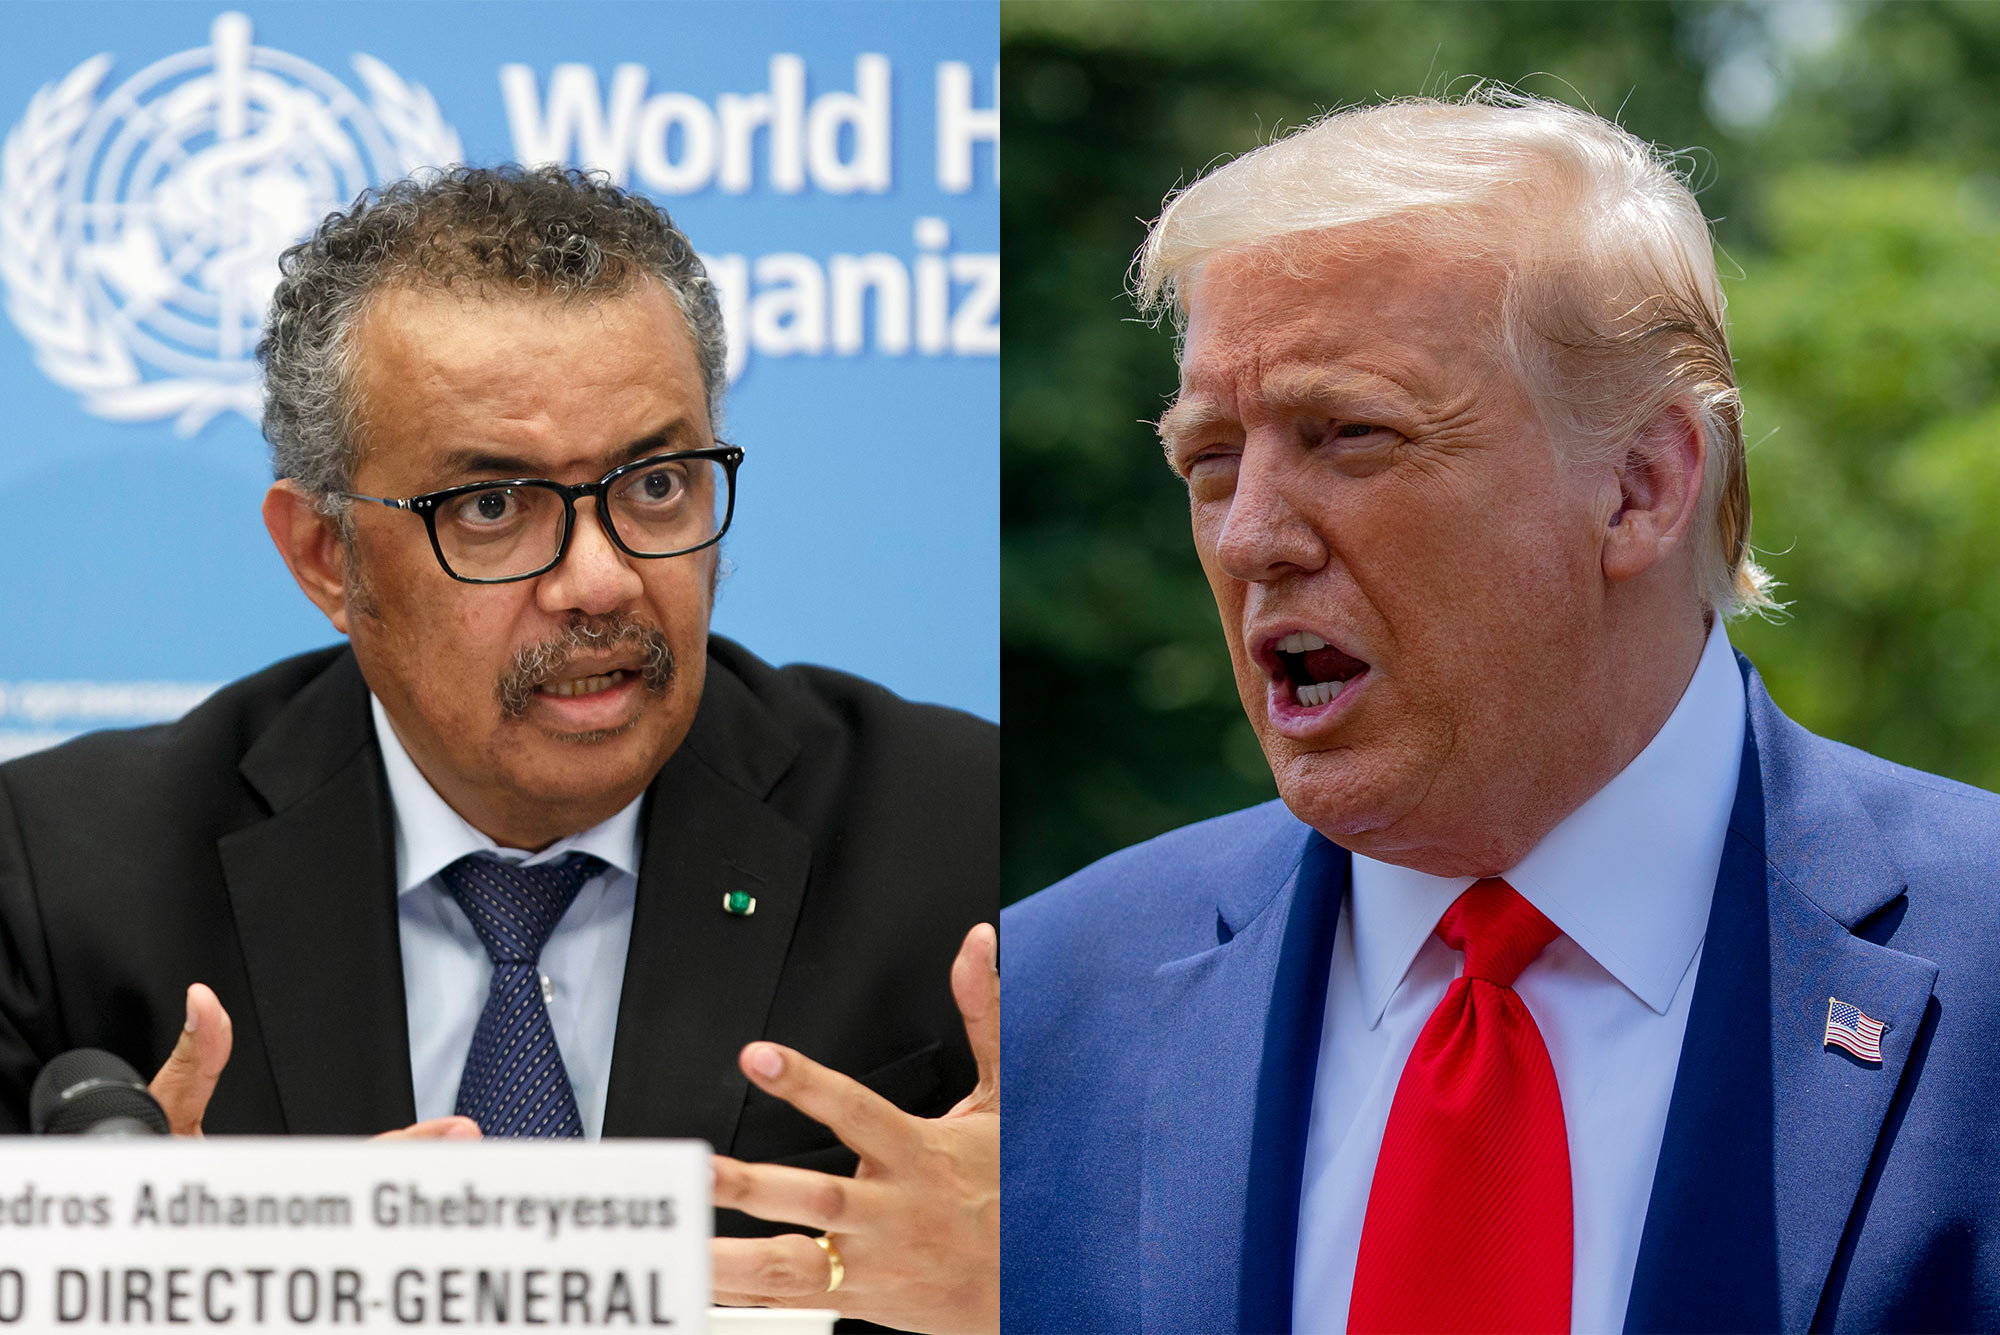 A composite image of the WHO Director-General Tedros Adhanom and U.S. President Donald Trump